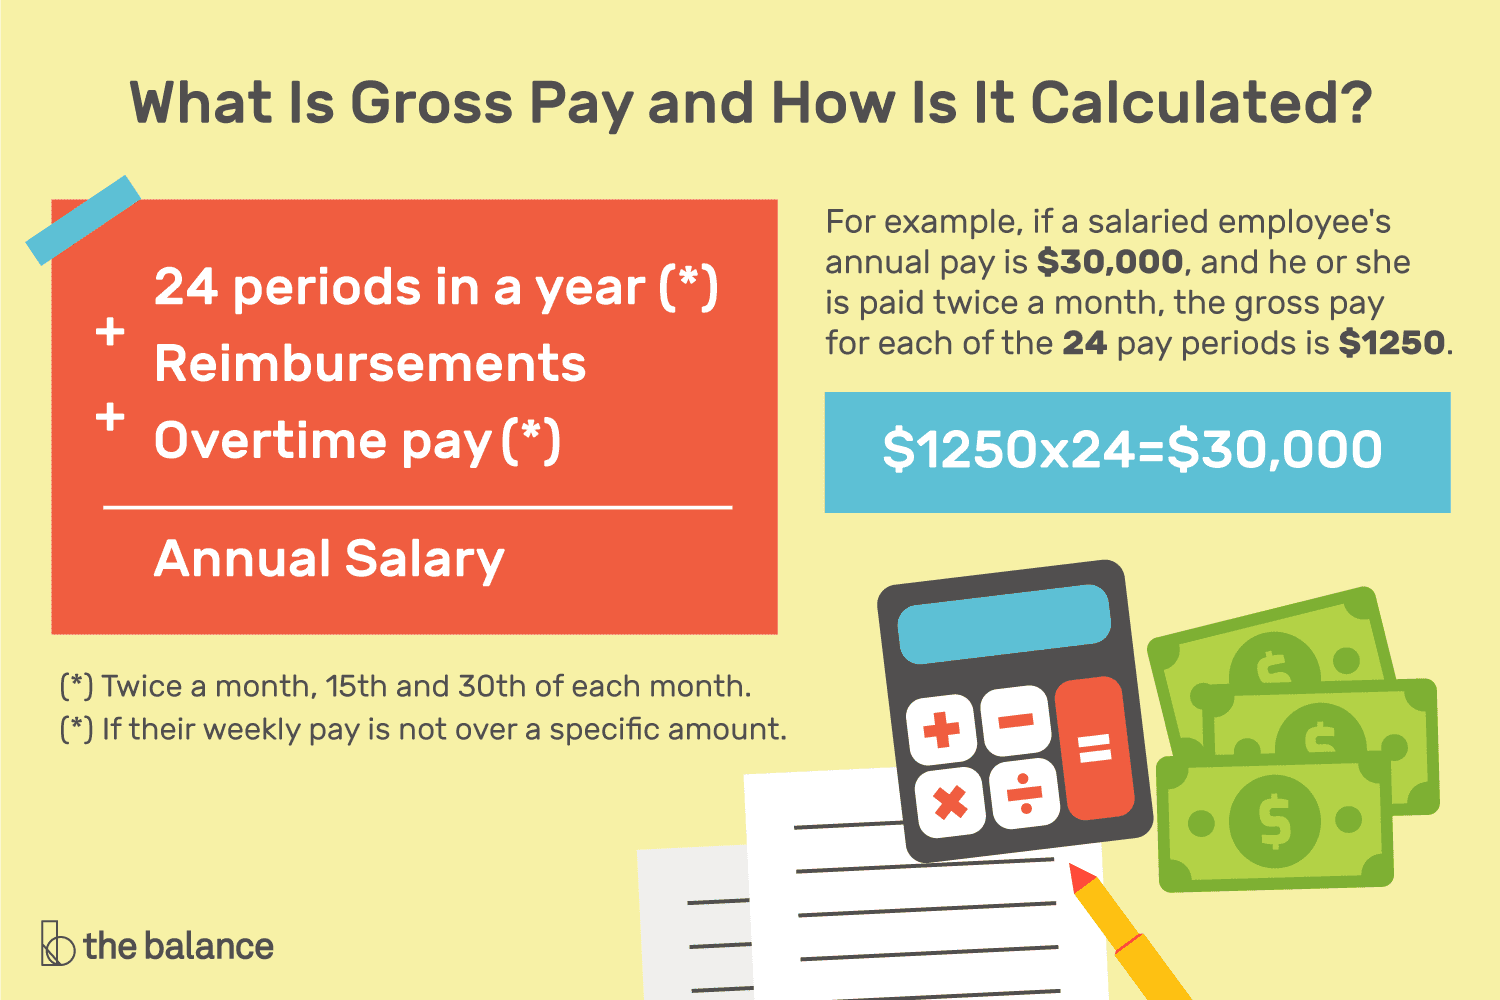 what is gross pay and how is it calculated